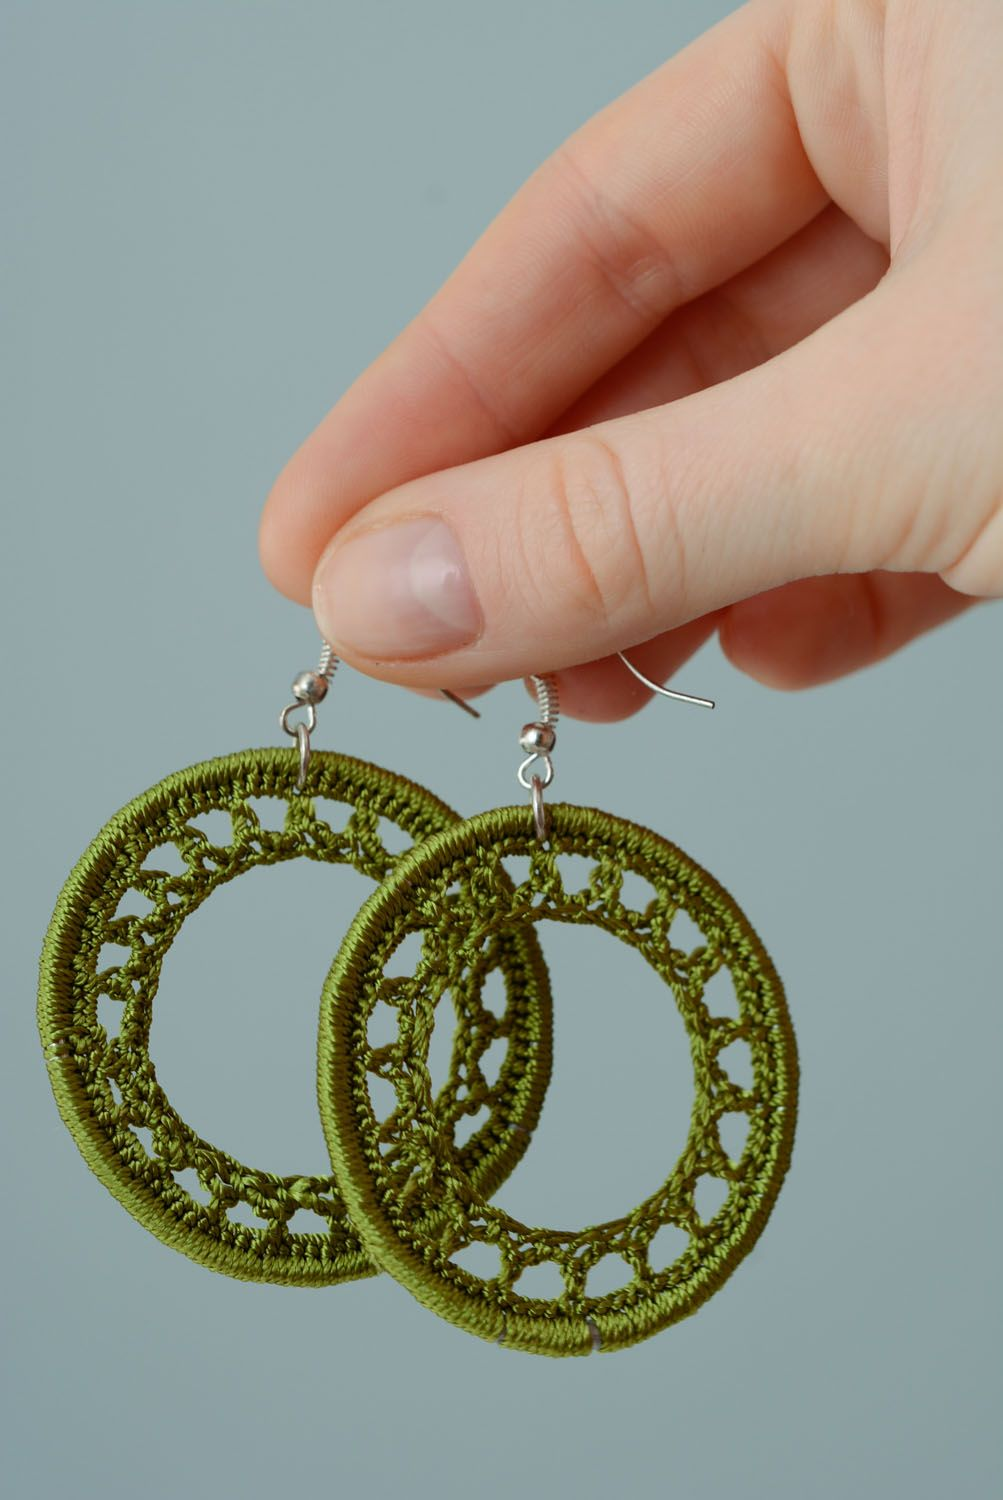 Homemade woven earrings photo 3